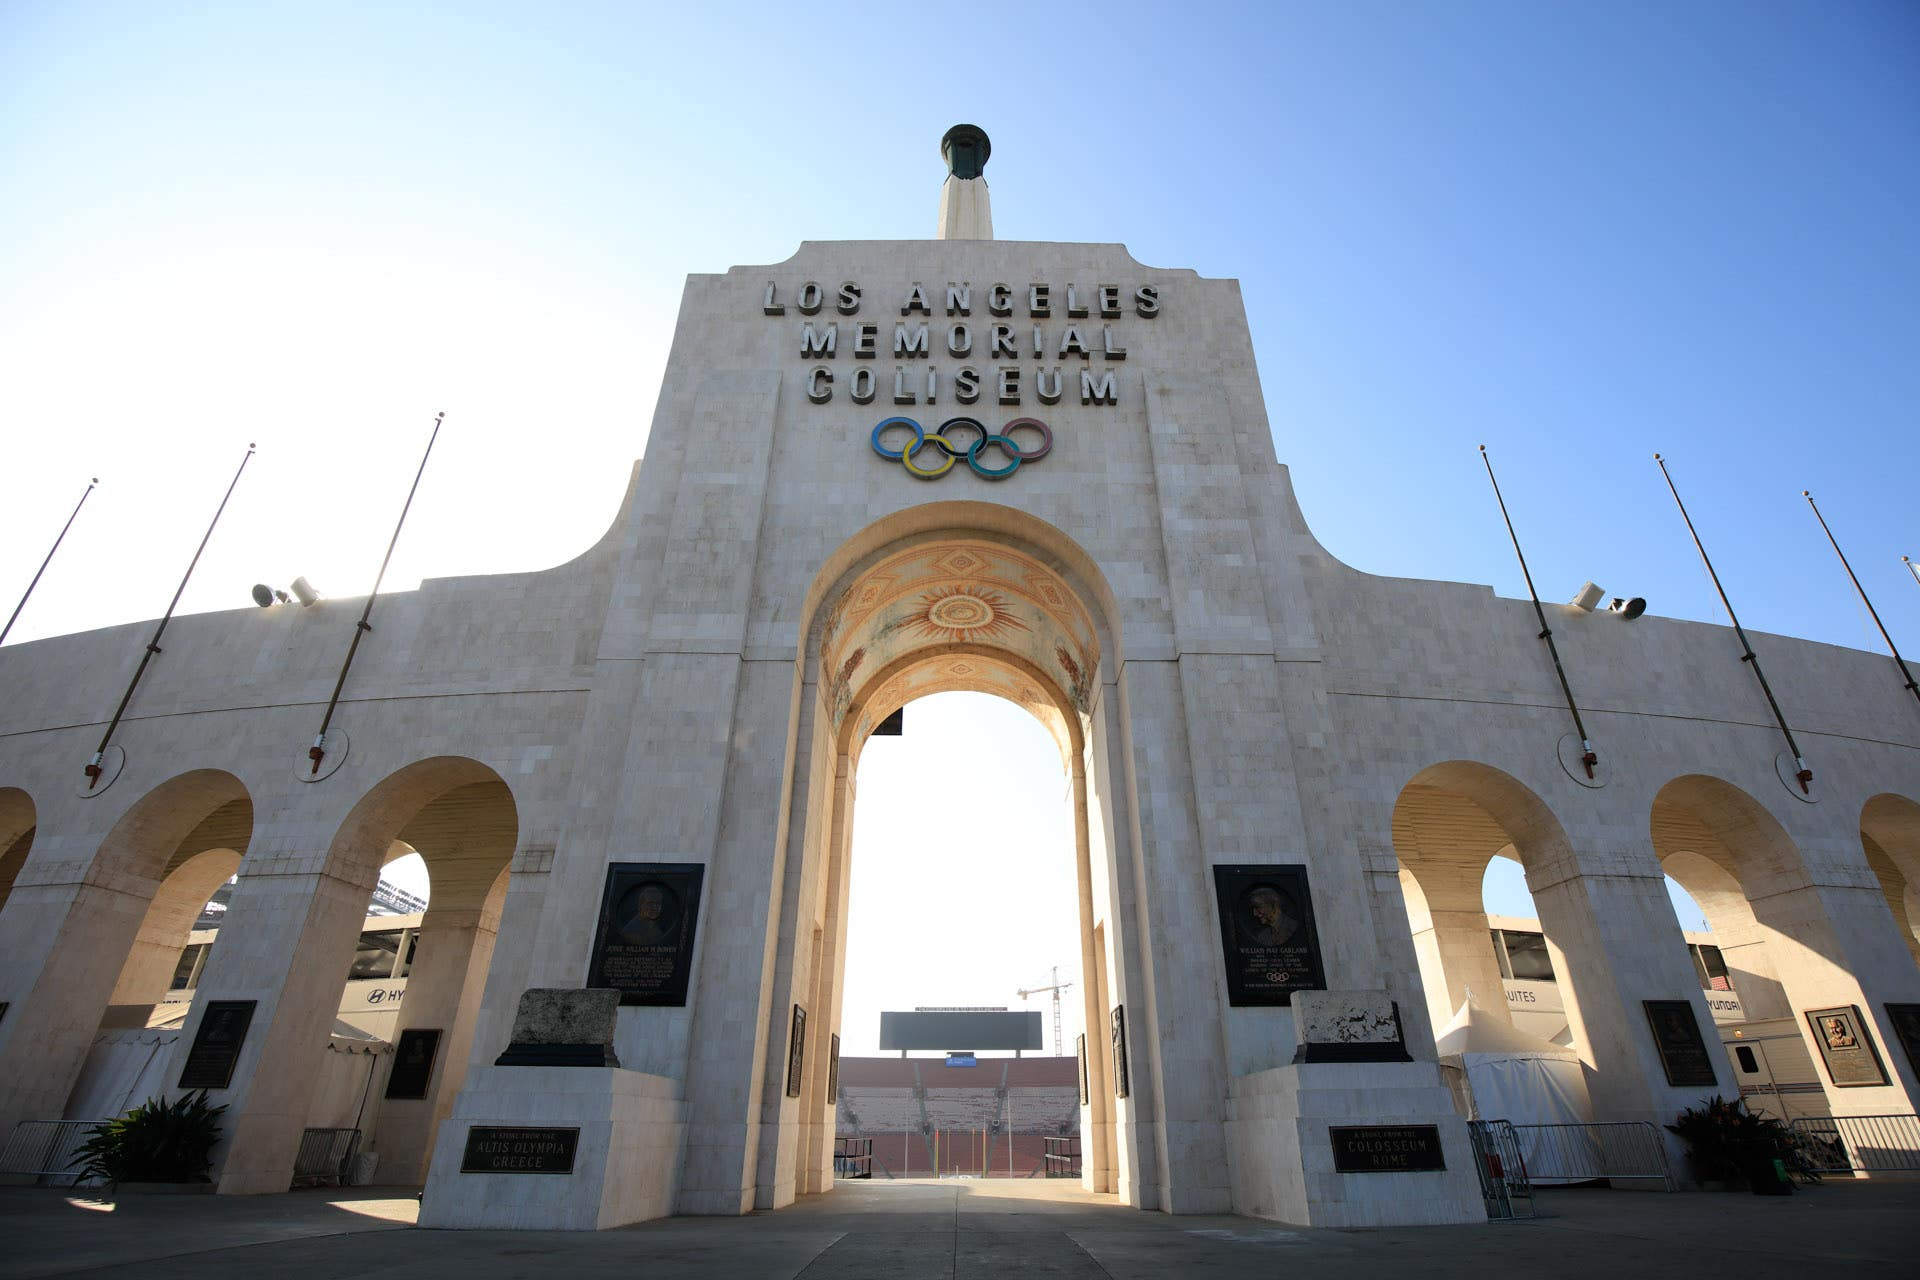 The Peristyle at Los Angeles Memorial Coliseum